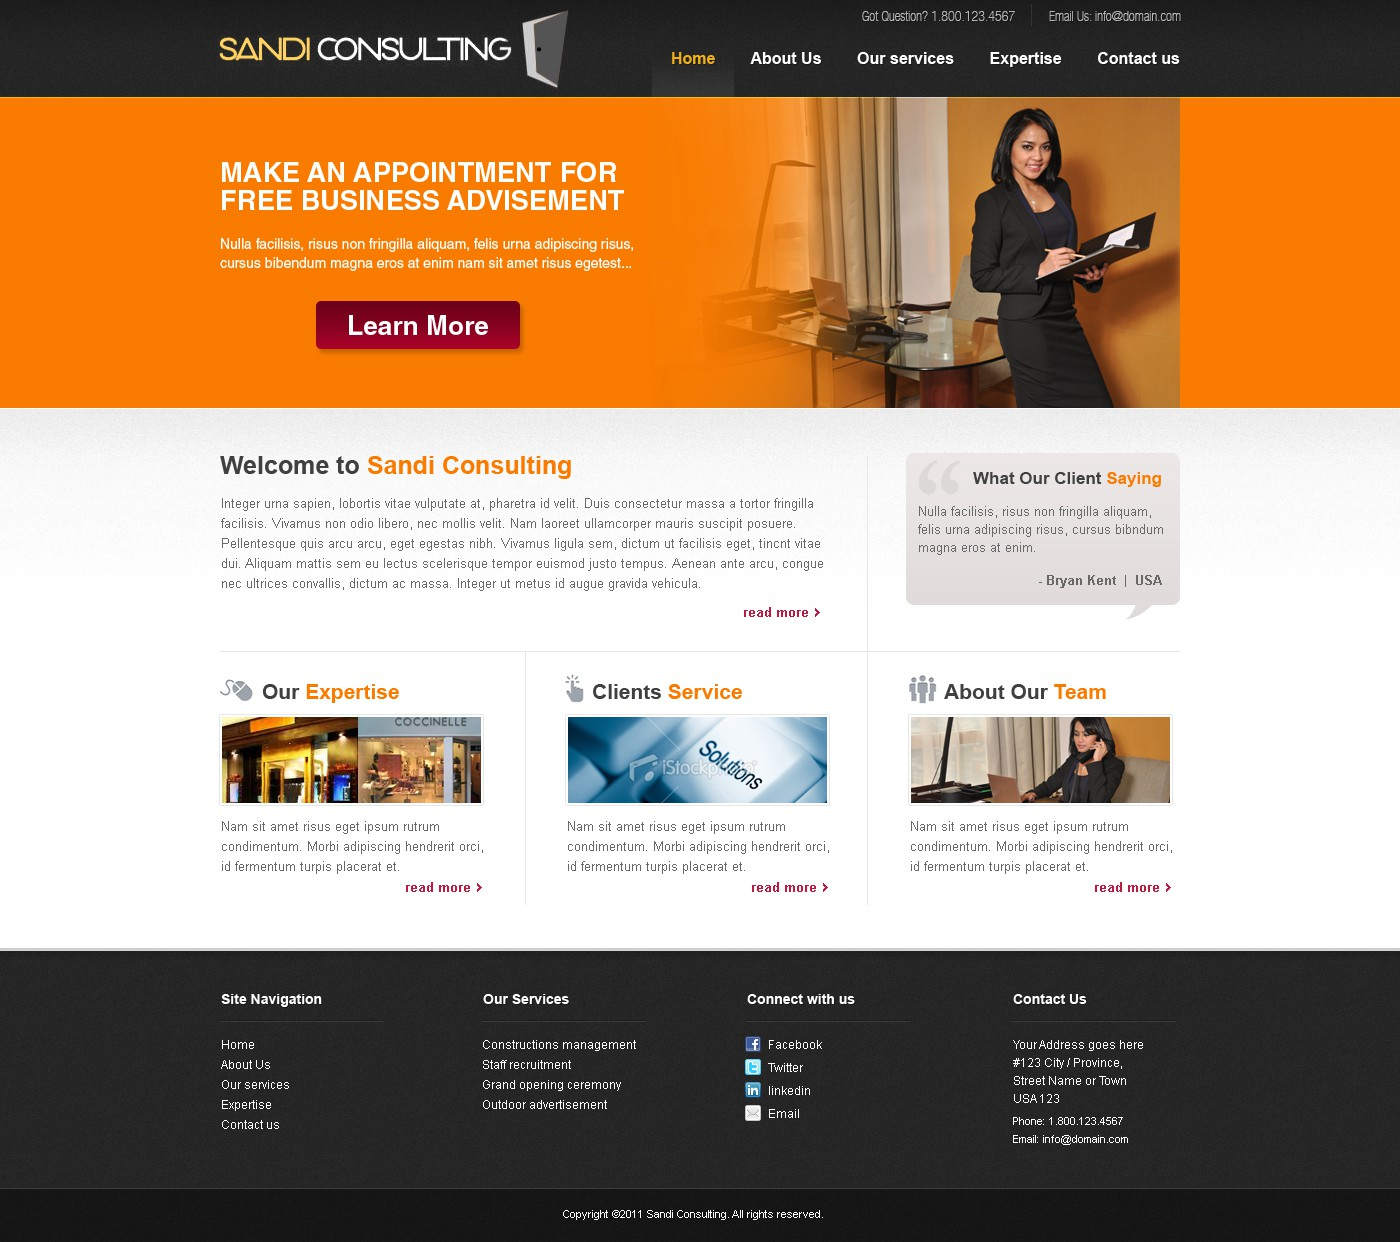 Help SANDI CONSULTING with a new website design